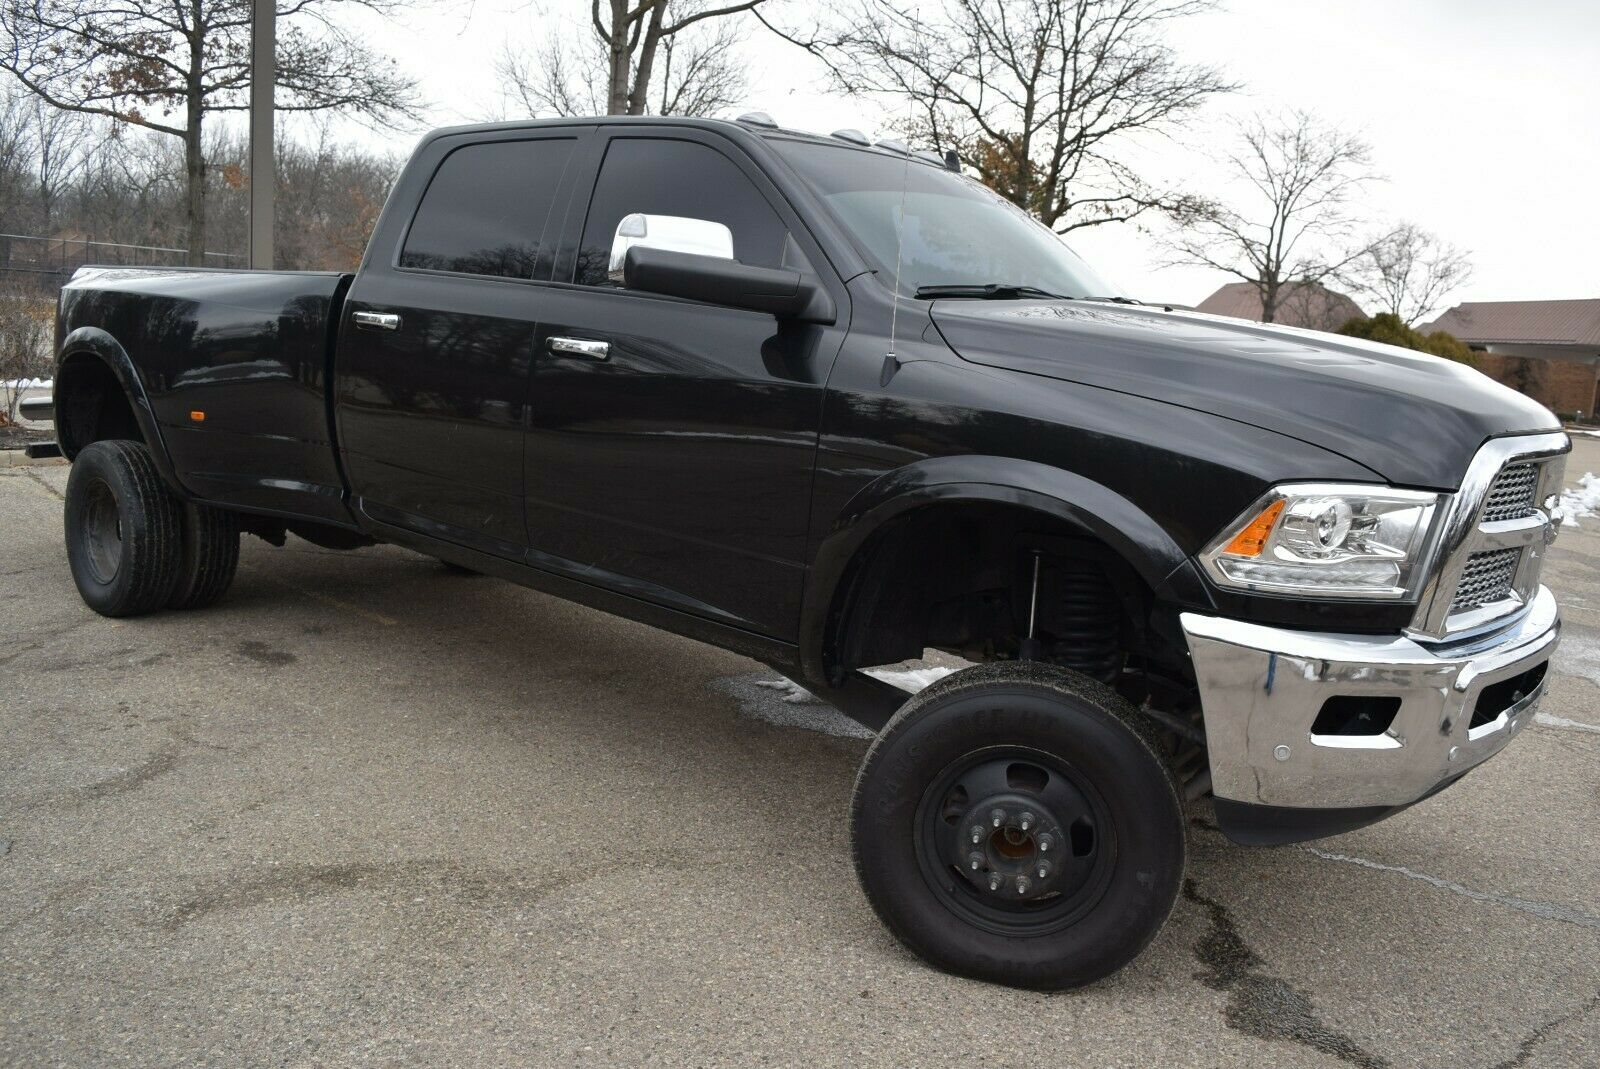 one of a kind 2018 Dodge Ram 3500 Laramie Edition lifted for sale